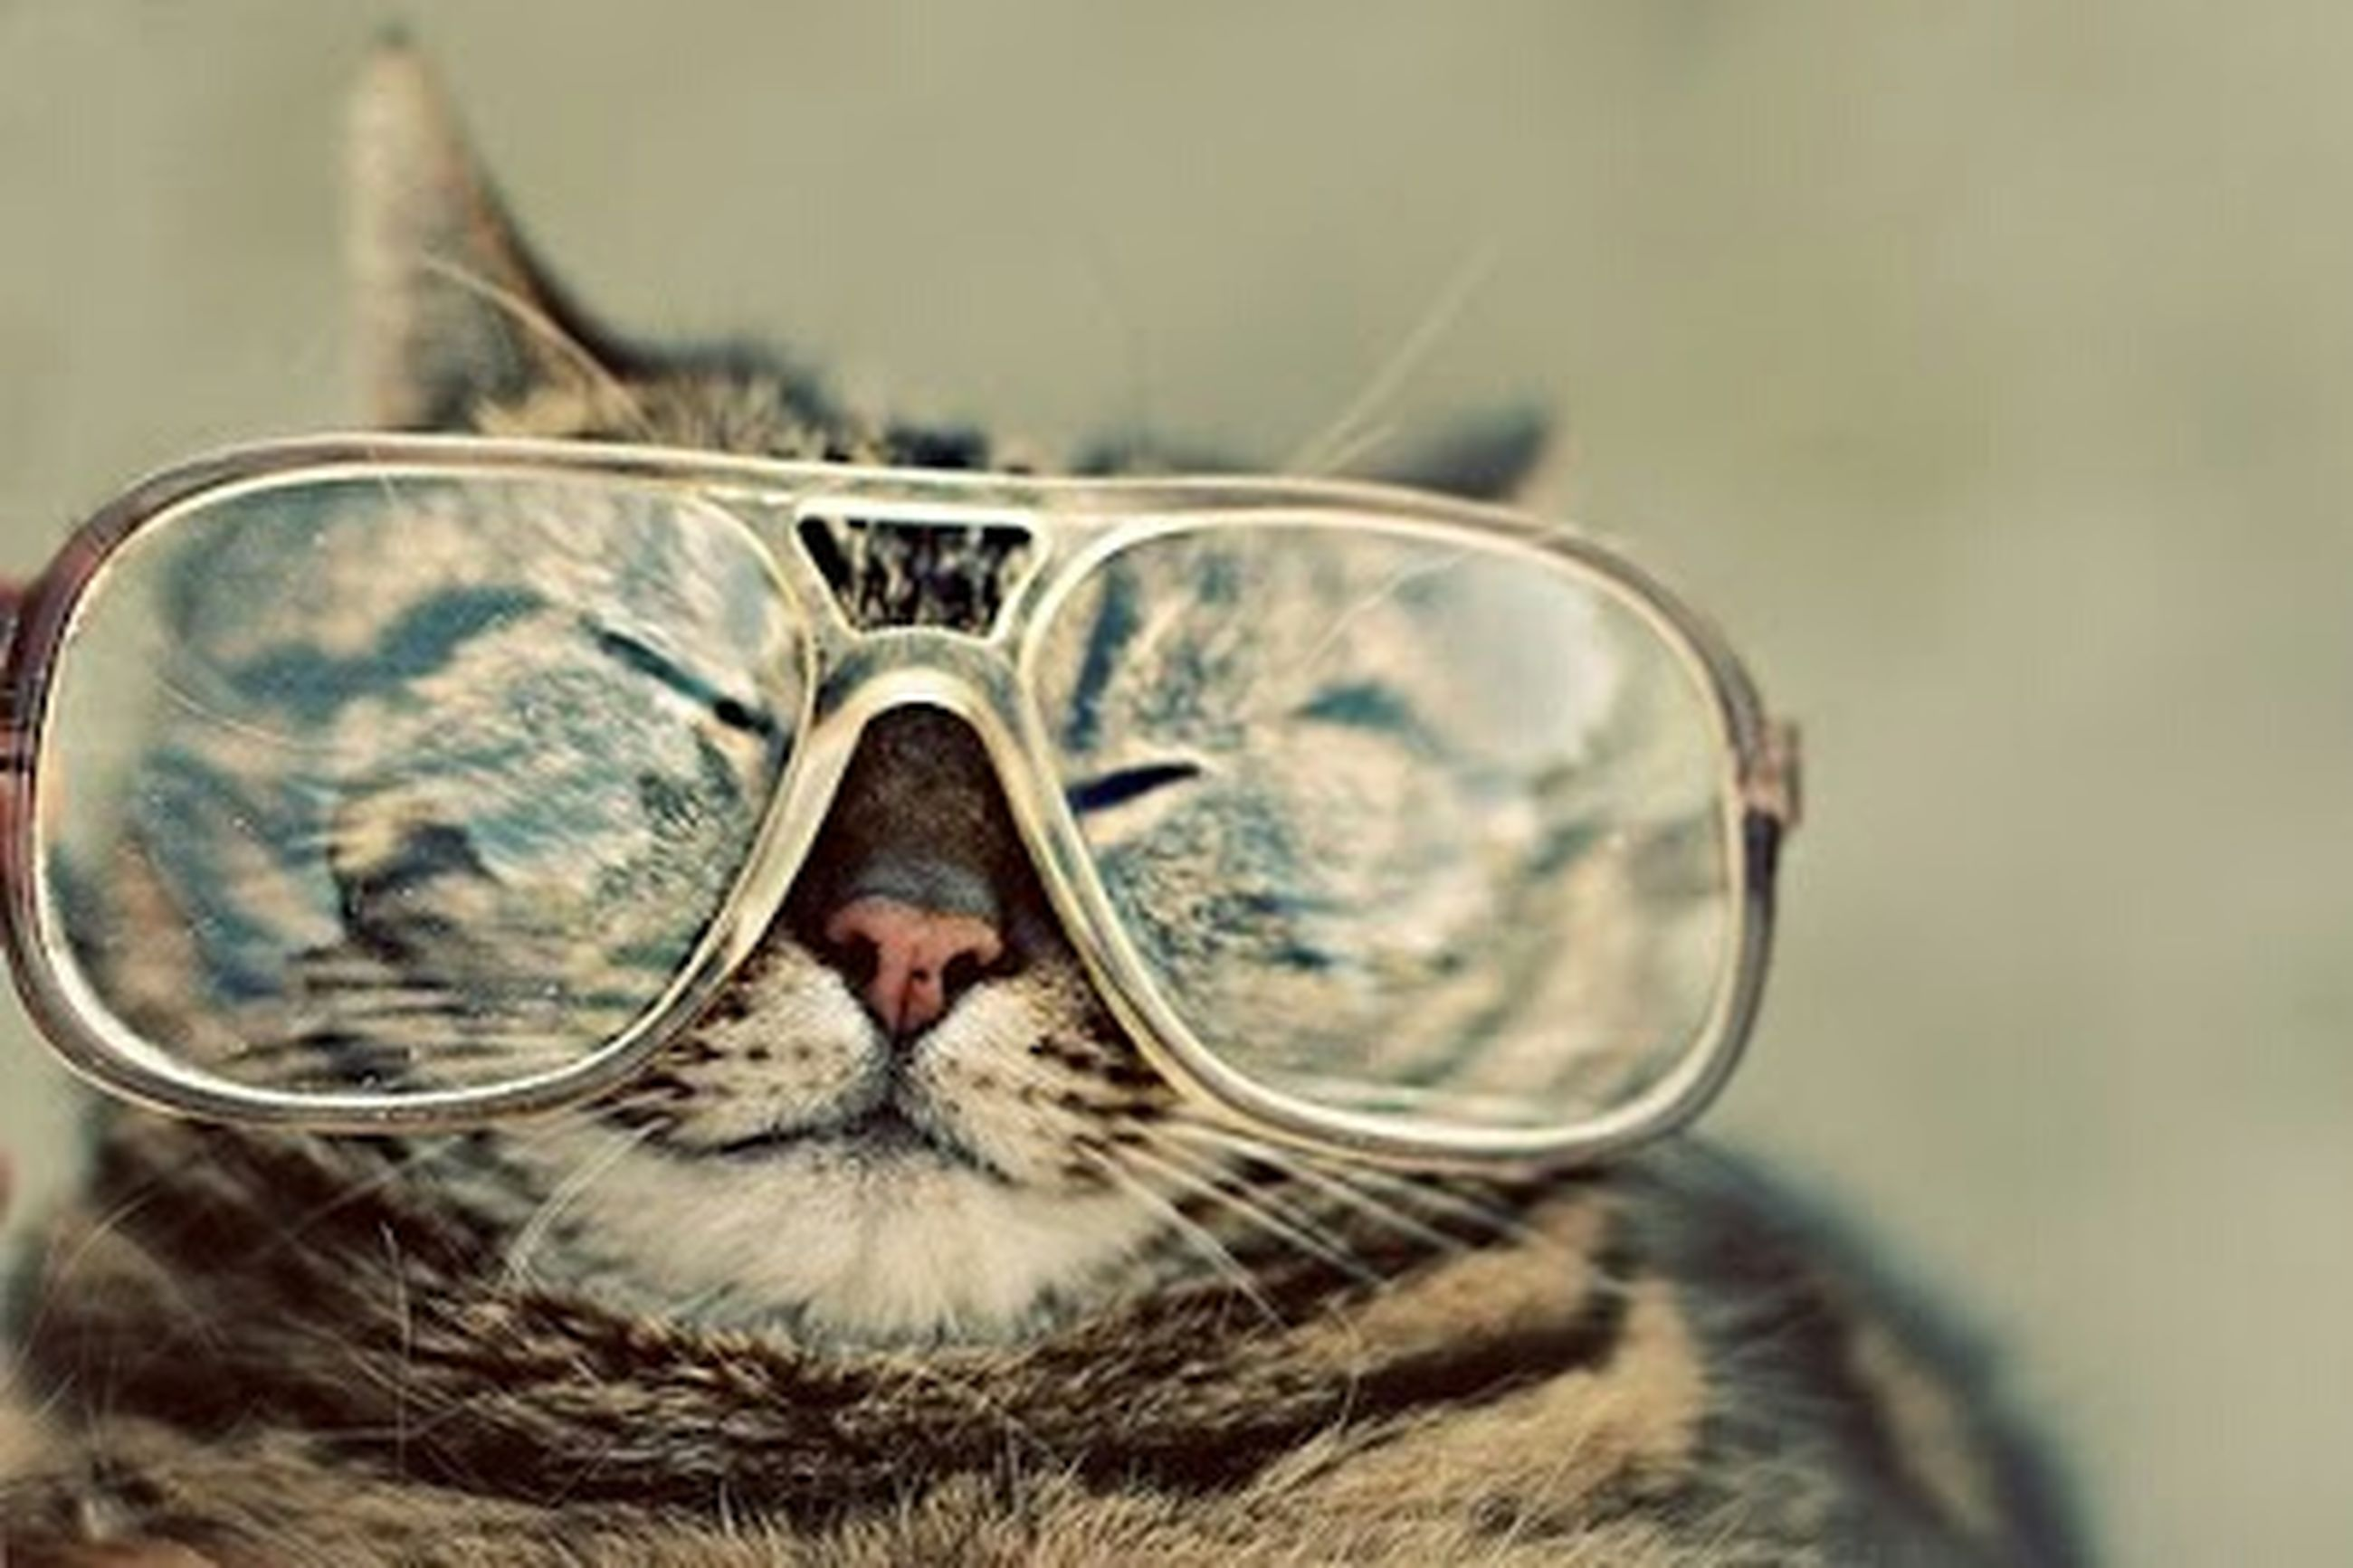 close-up, domestic animals, sunglasses, one animal, animal themes, focus on foreground, mammal, reflection, pets, one person, part of, day, transparent, animal body part, selective focus, glass - material, looking at camera, portrait, outdoors, sunlight